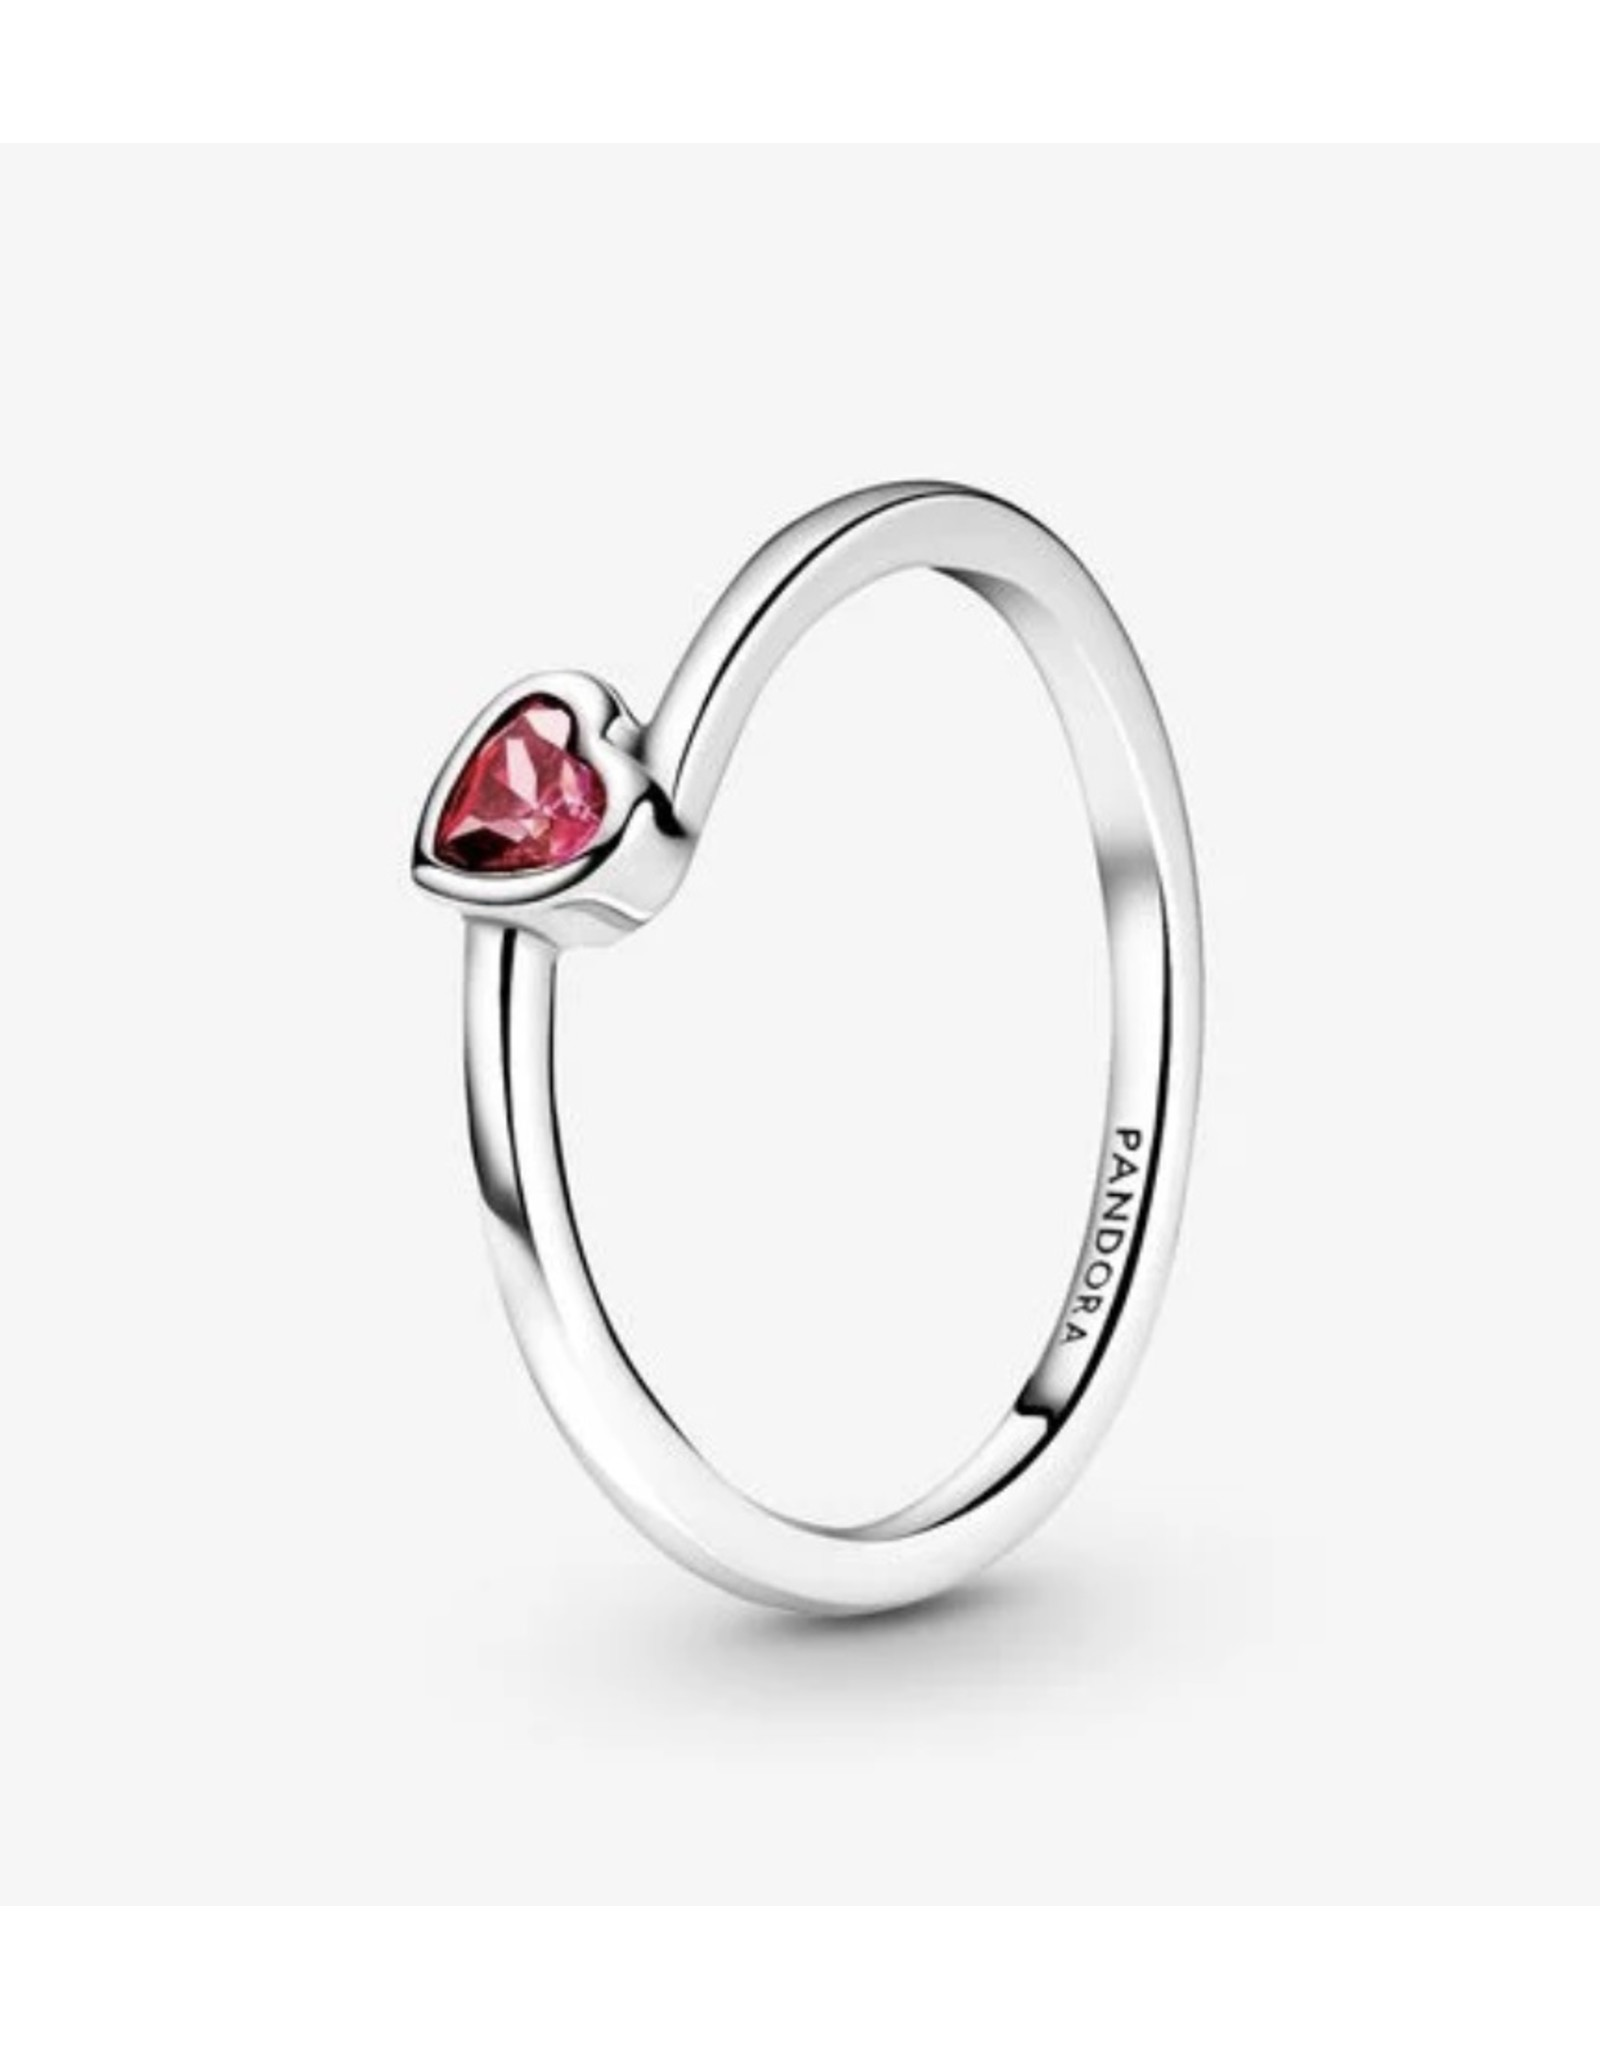 Pandora Pandora Ring,199267C01, Tilted Heart Solitaire, Red CZ